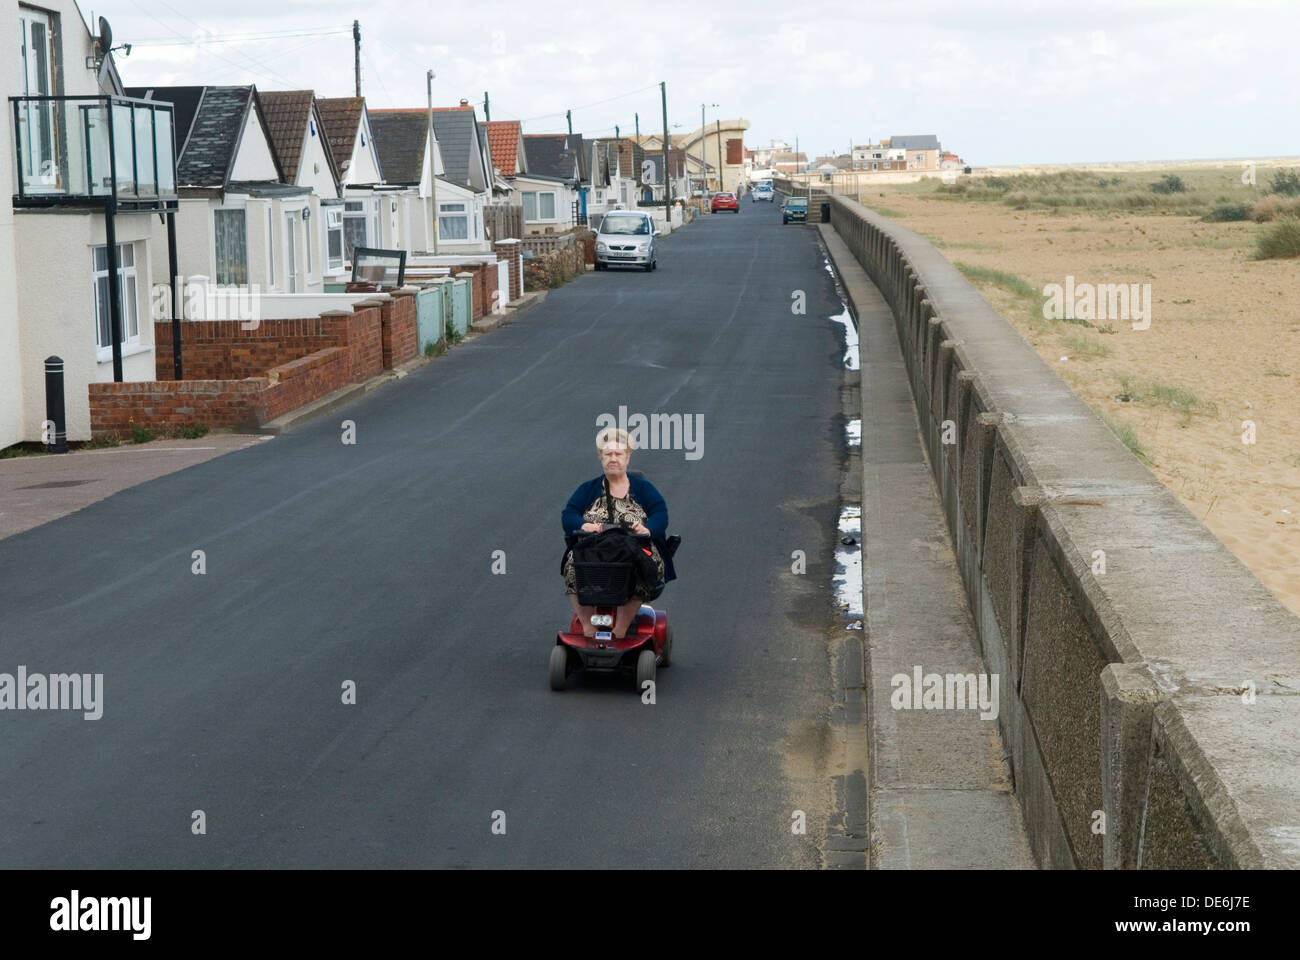 Motorised disability vehicle scooter Jaywick Essex Uk. Brooklands estate Senior oap female poverty in coastal town.  2013 2000s Uk HOMER SYKES - Stock Image